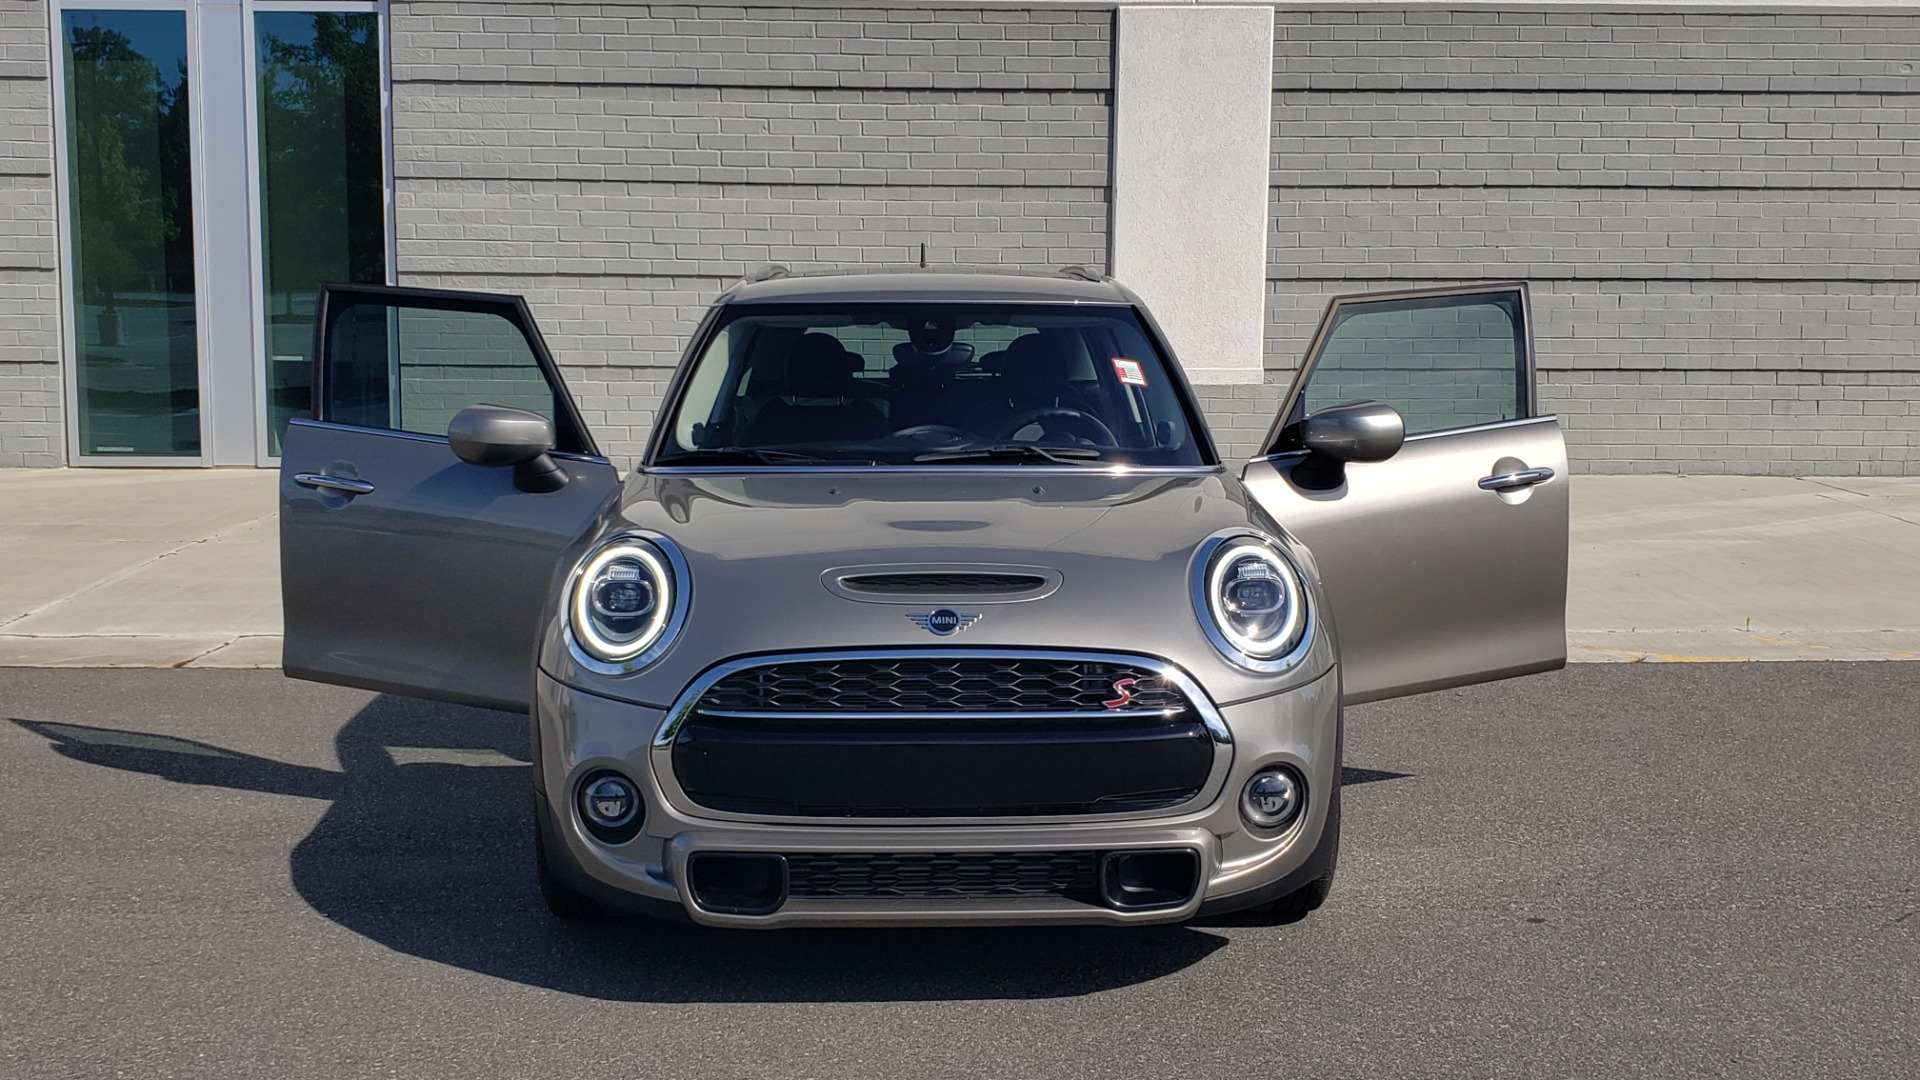 Used 2020 MINI HARDTOP 4 DOOR COOPER S / NAV / SUNROOF / AUTO / H/K SND / REARVIEW for sale $28,495 at Formula Imports in Charlotte NC 28227 25